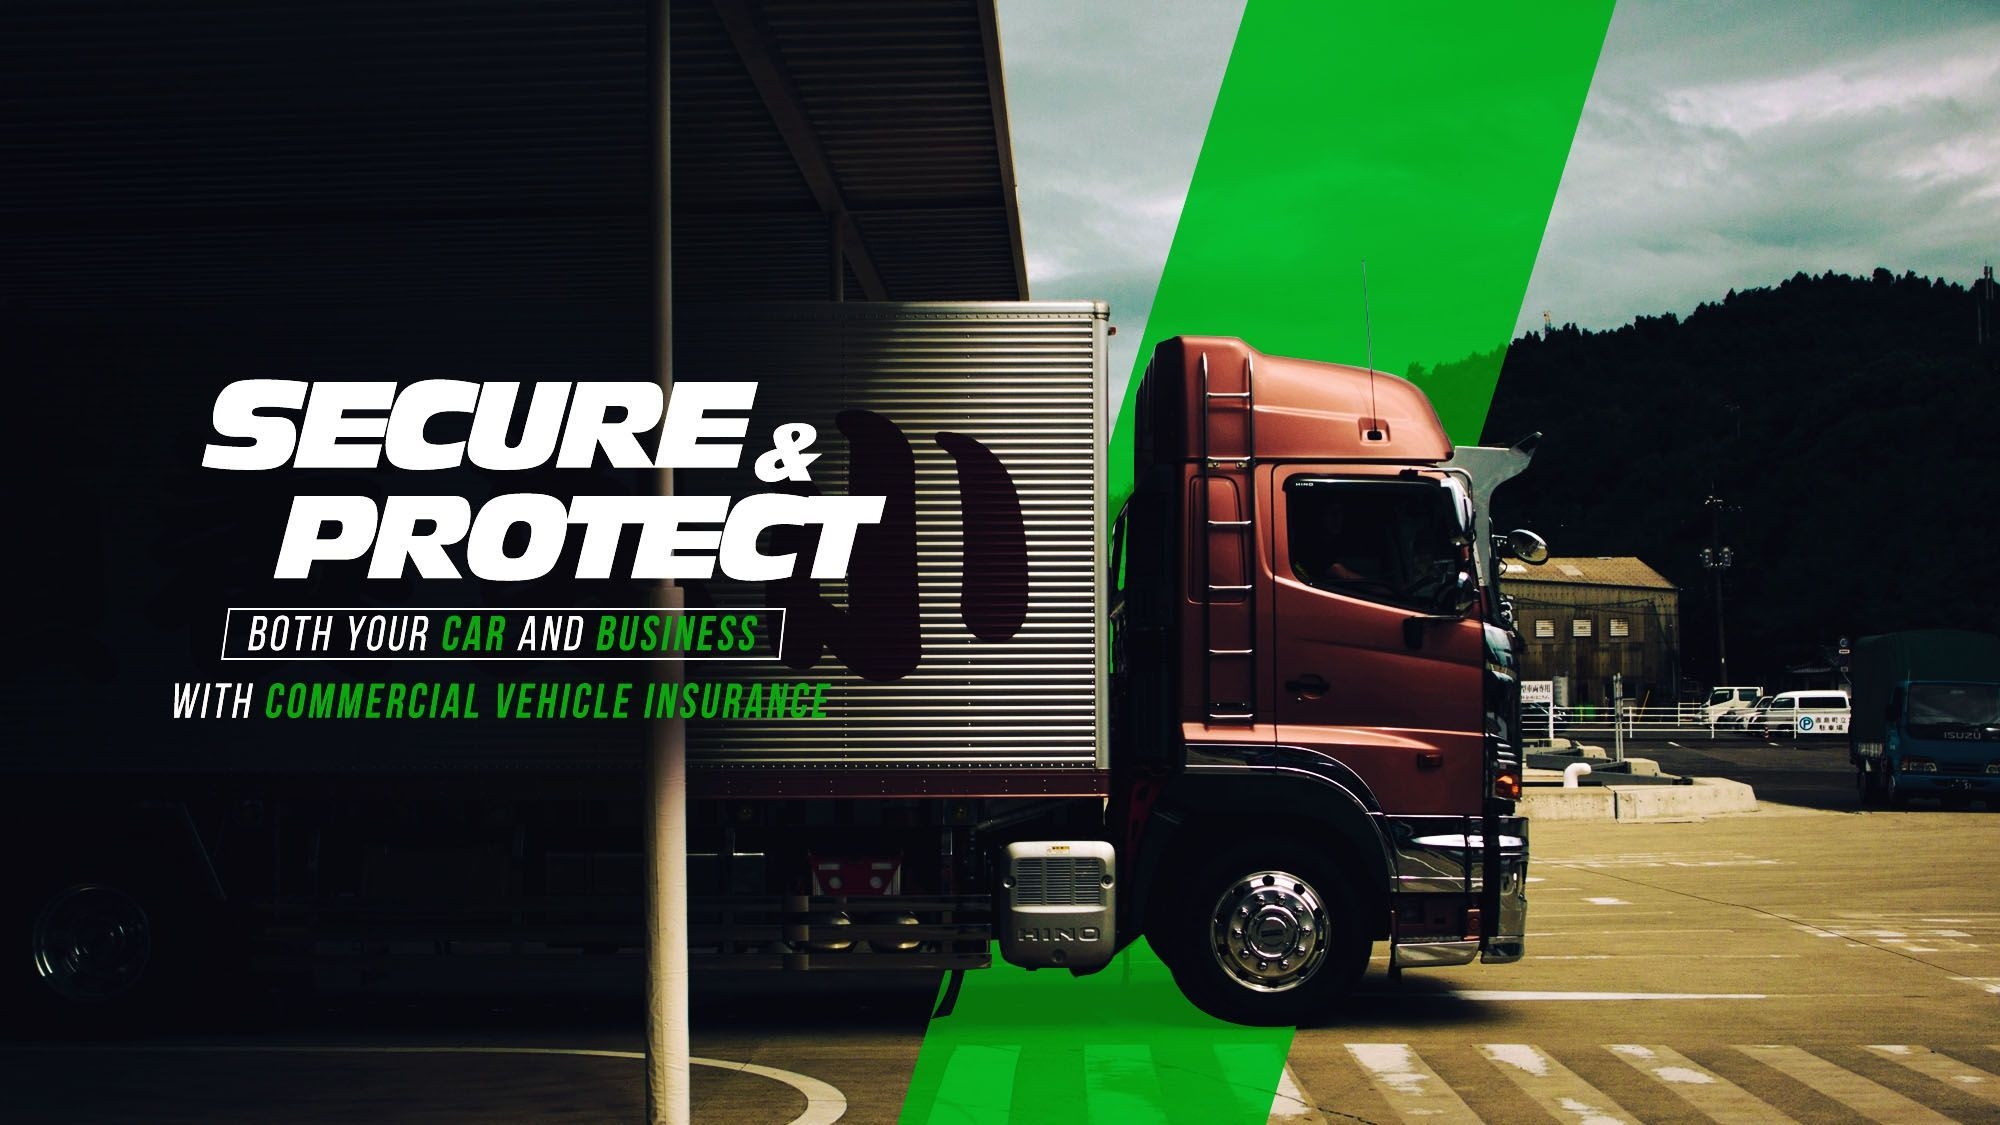 Secure and protect both your car and business with